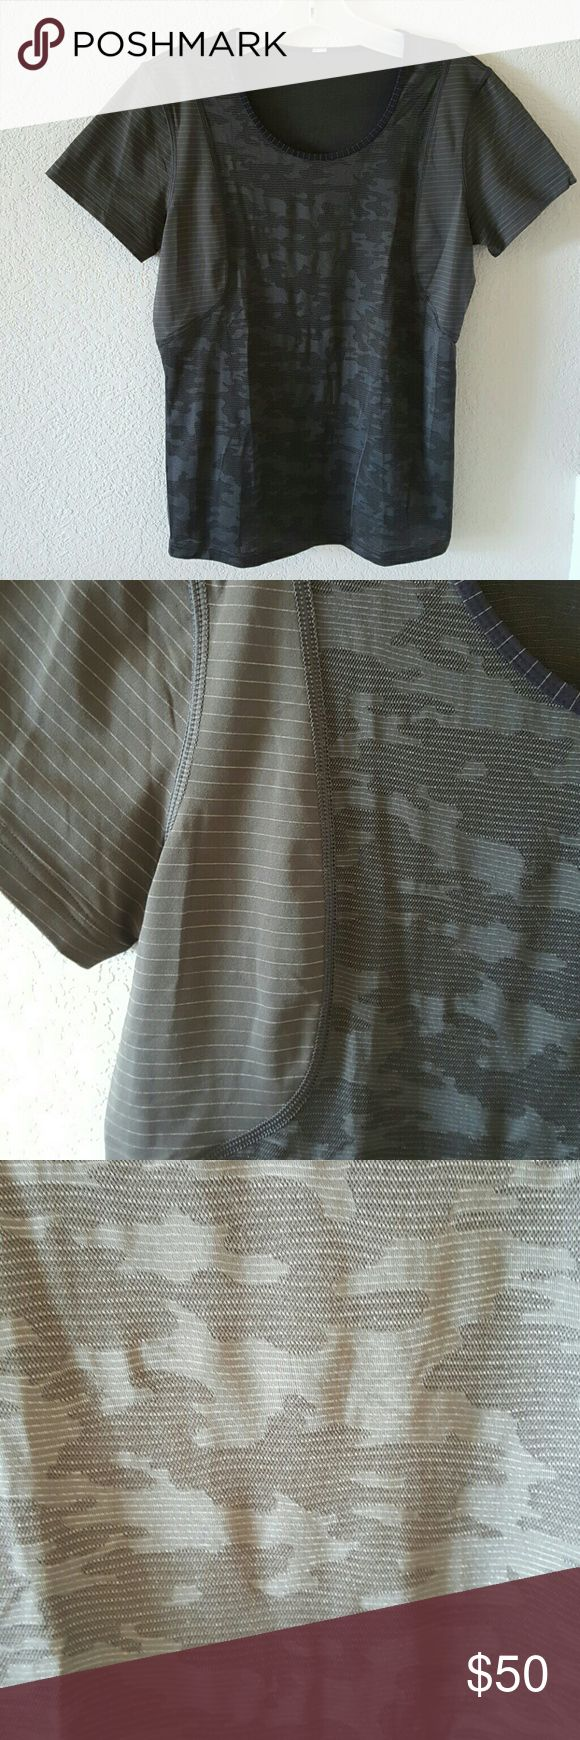 Lululemon mesh camouflage top New without tags lululemon athletica Tops Tees - Short Sleeve